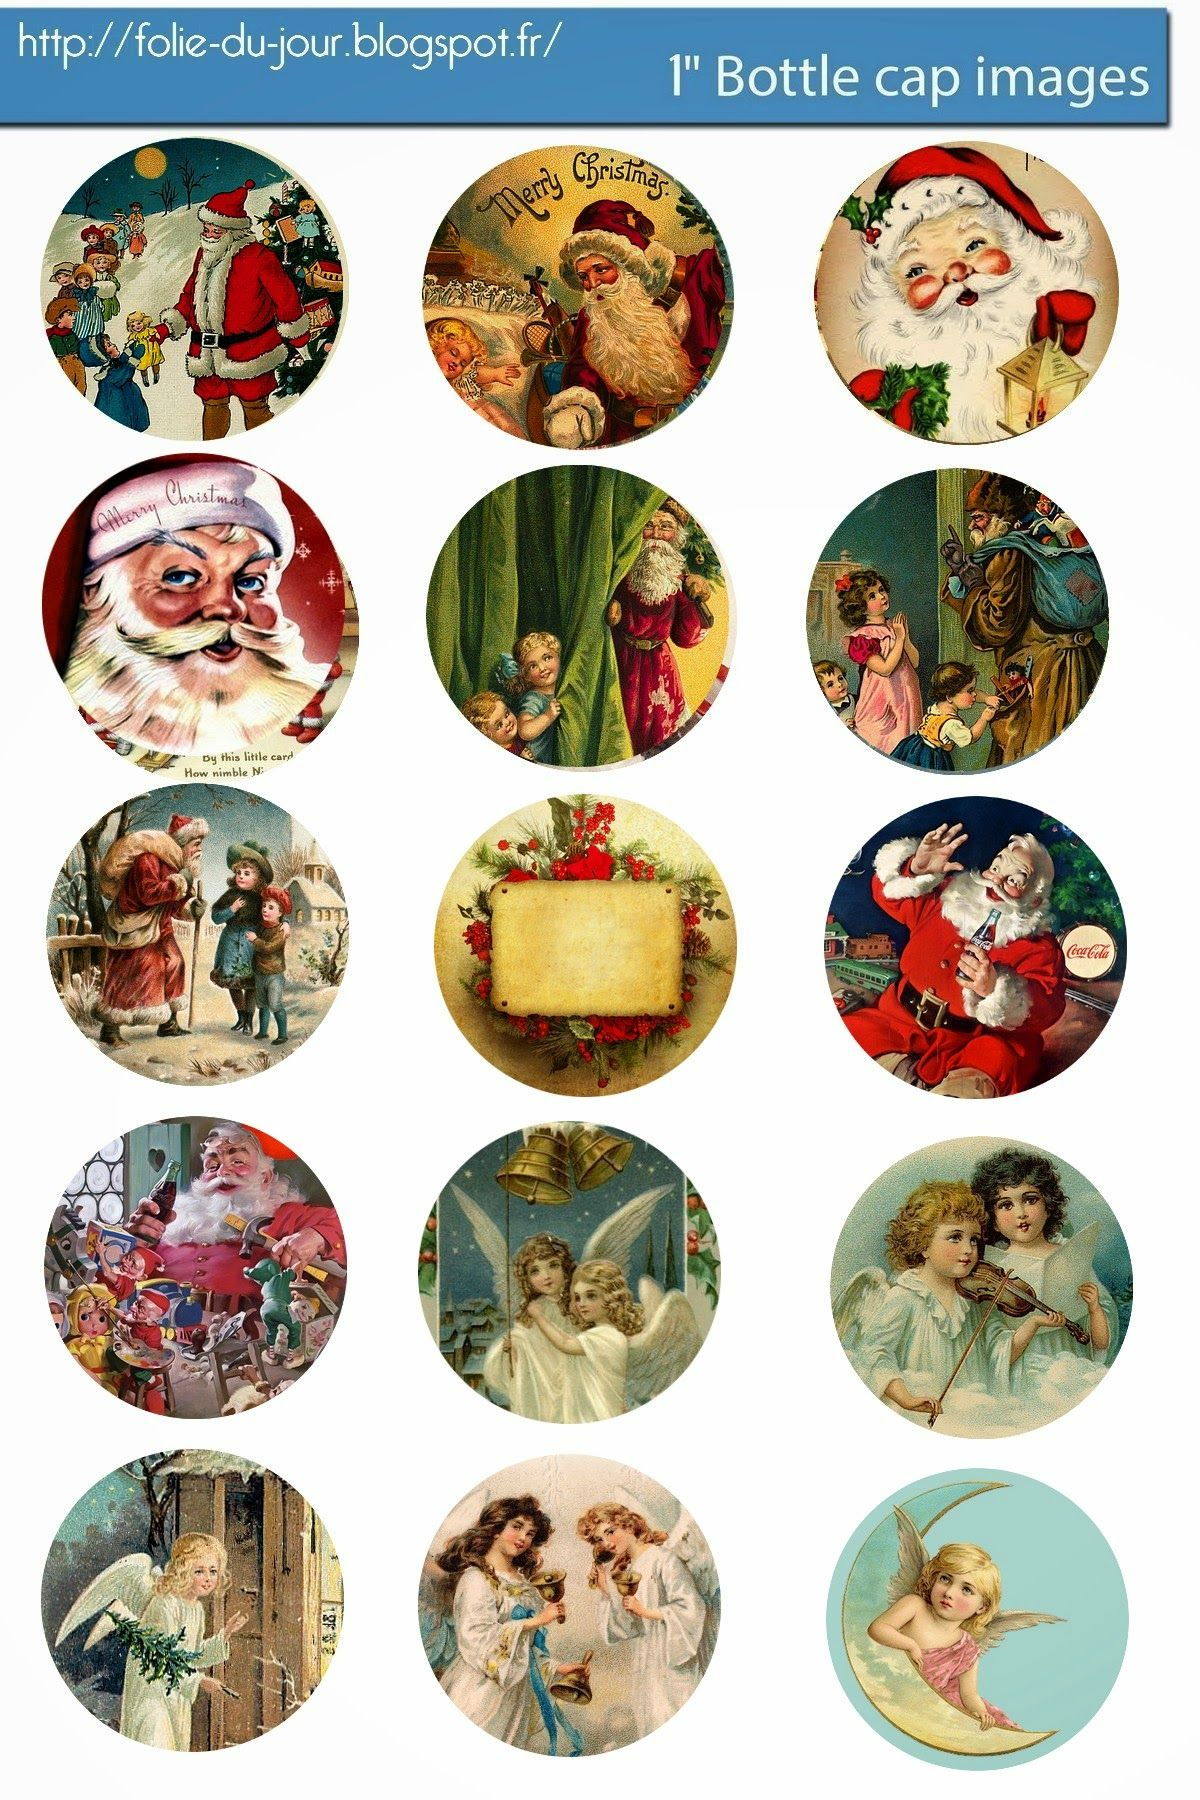 free bottle cap images vintage christmas santa claus free bottle